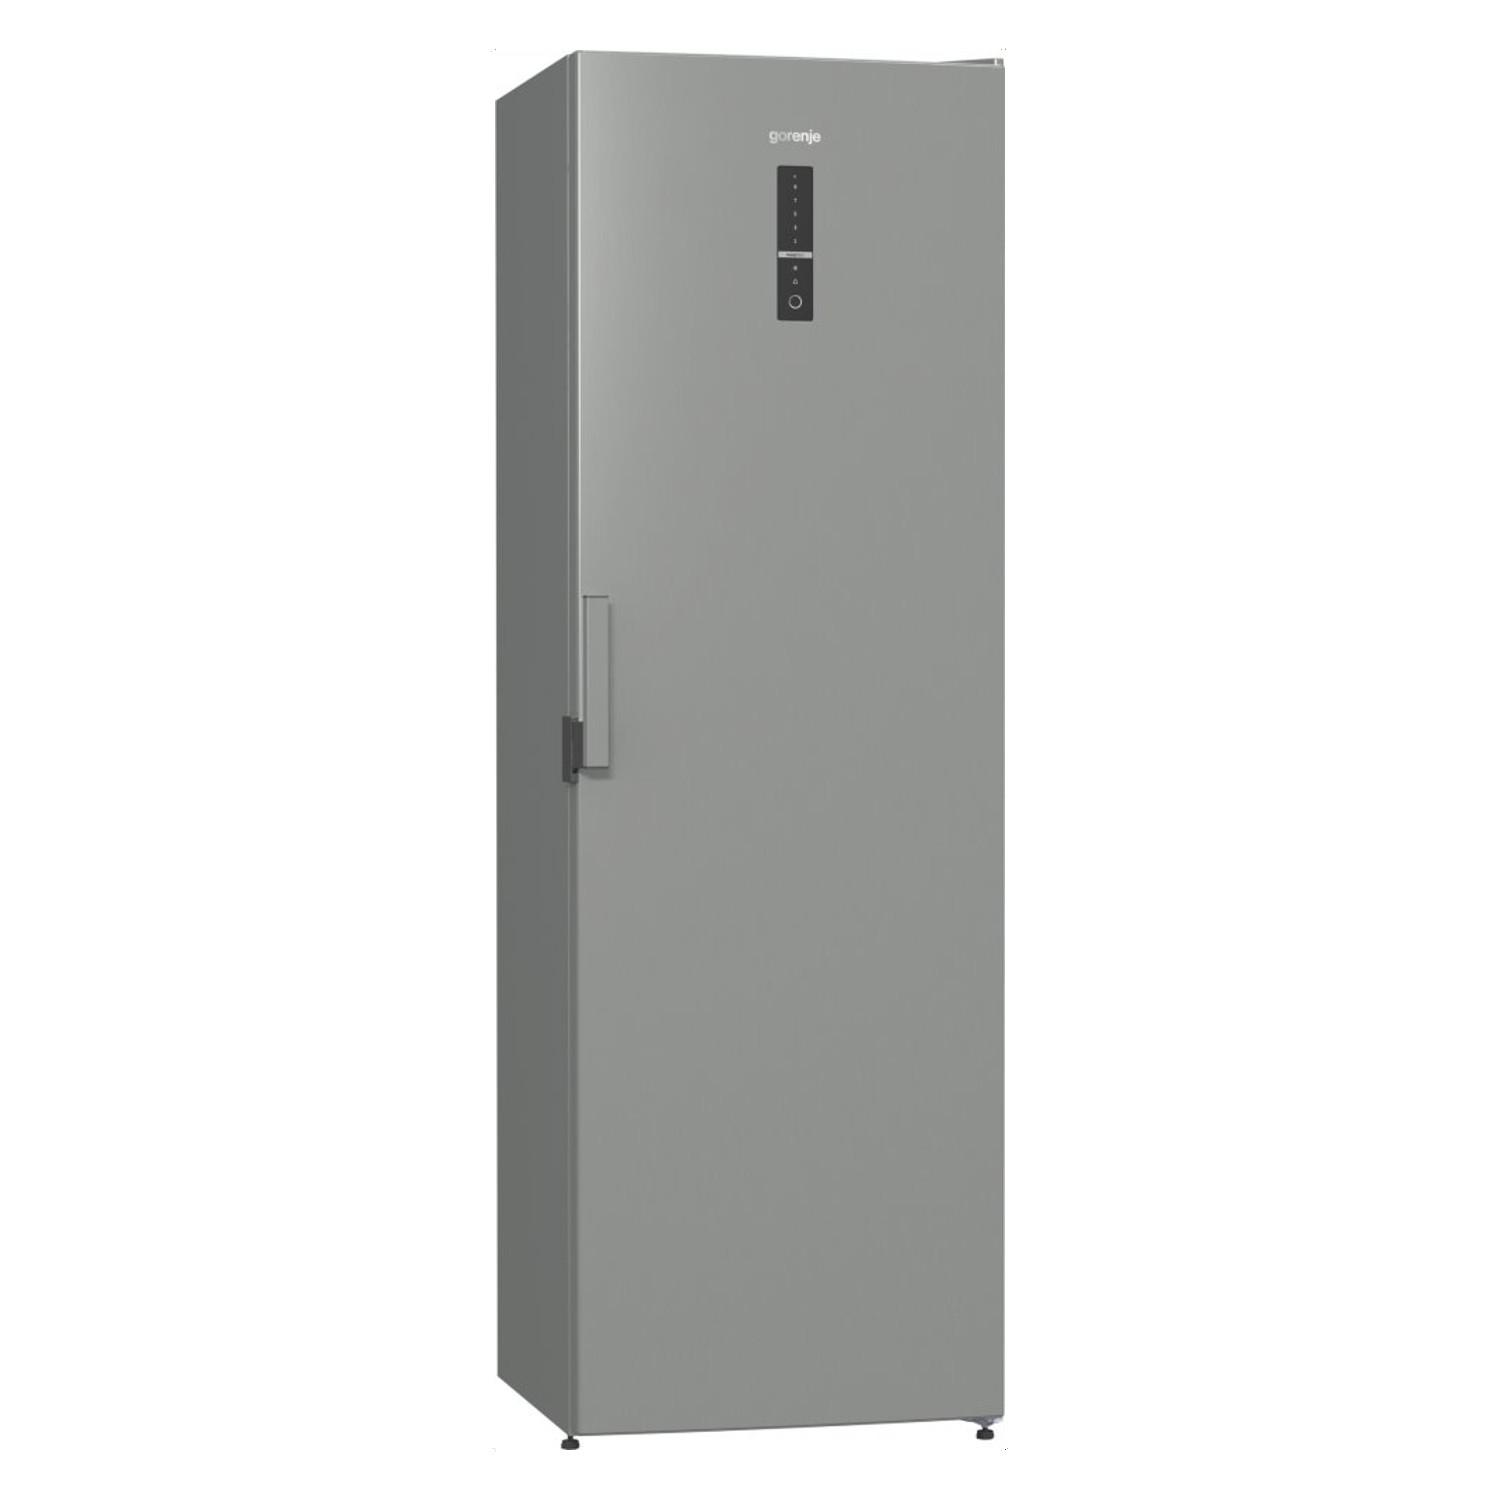 Photo Réfrigérateur 1 porte Gorenje R6192LX